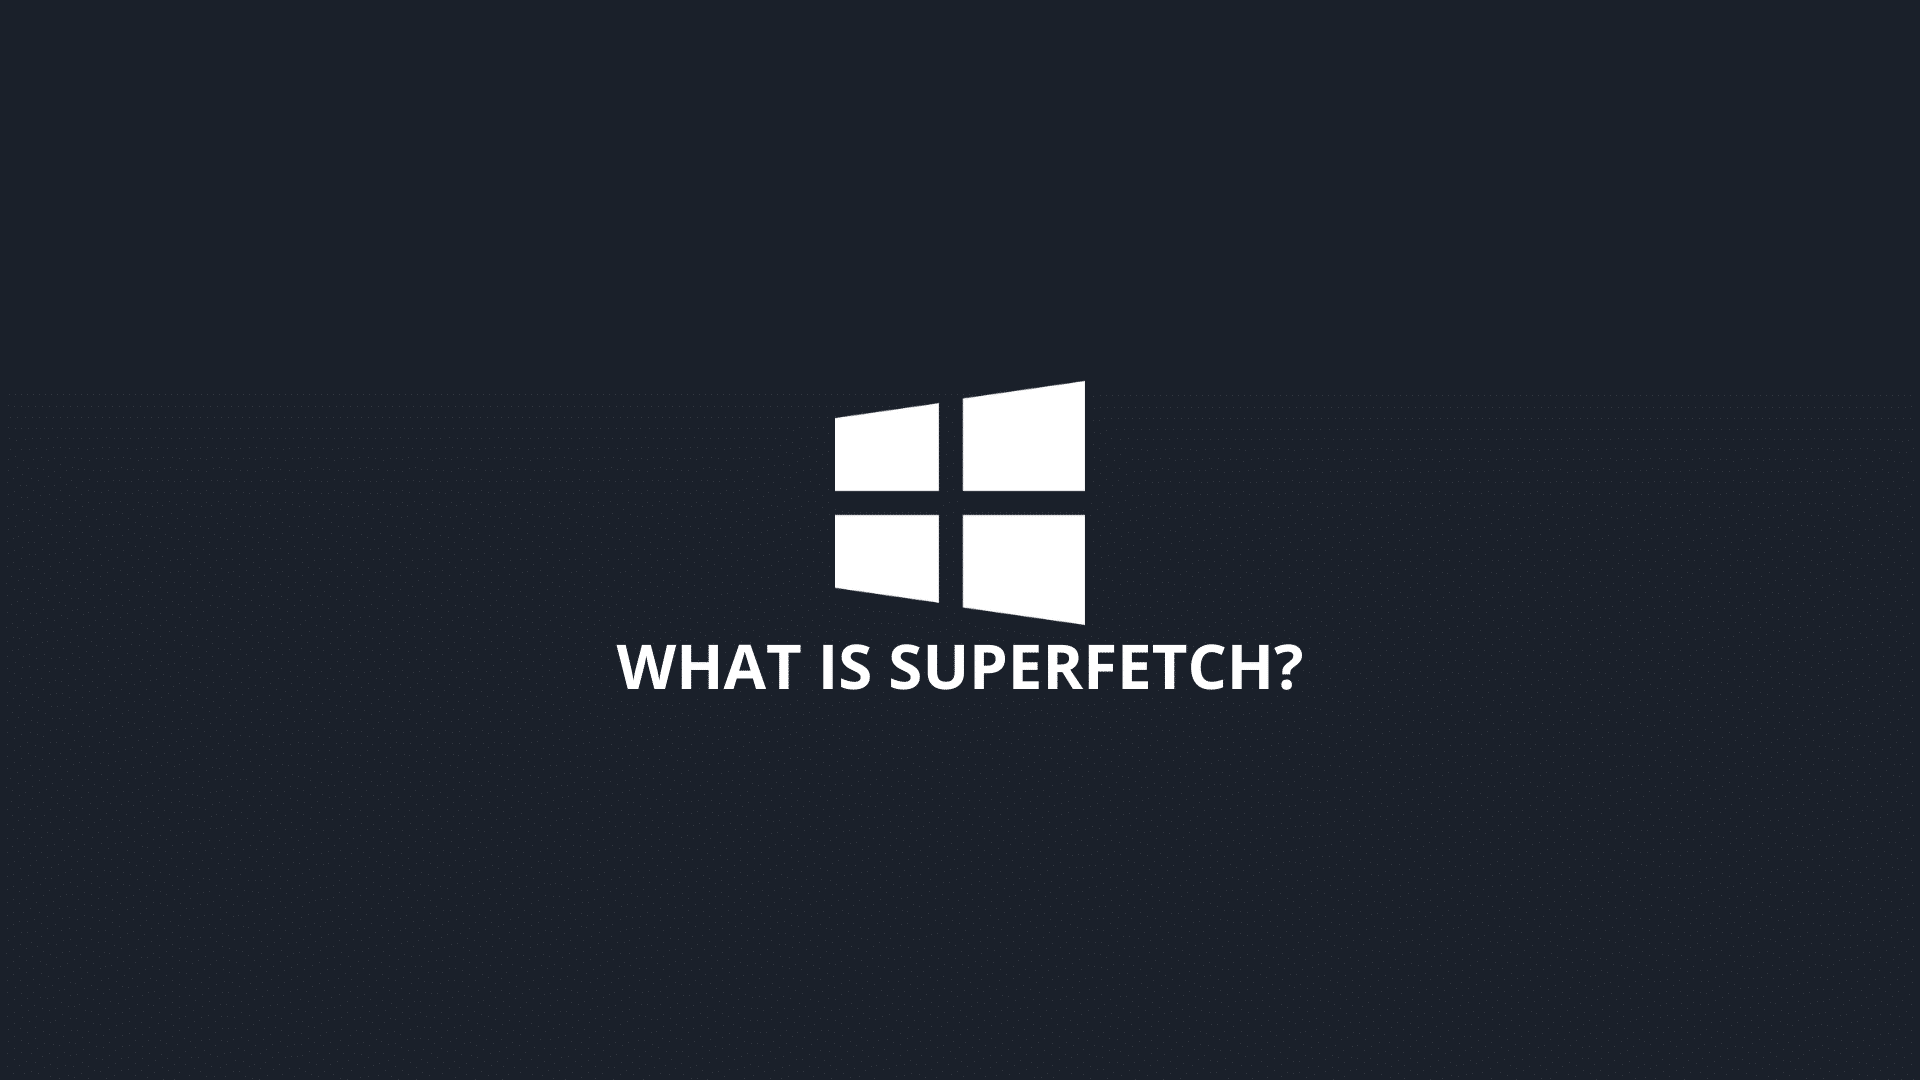 What is Superfetch